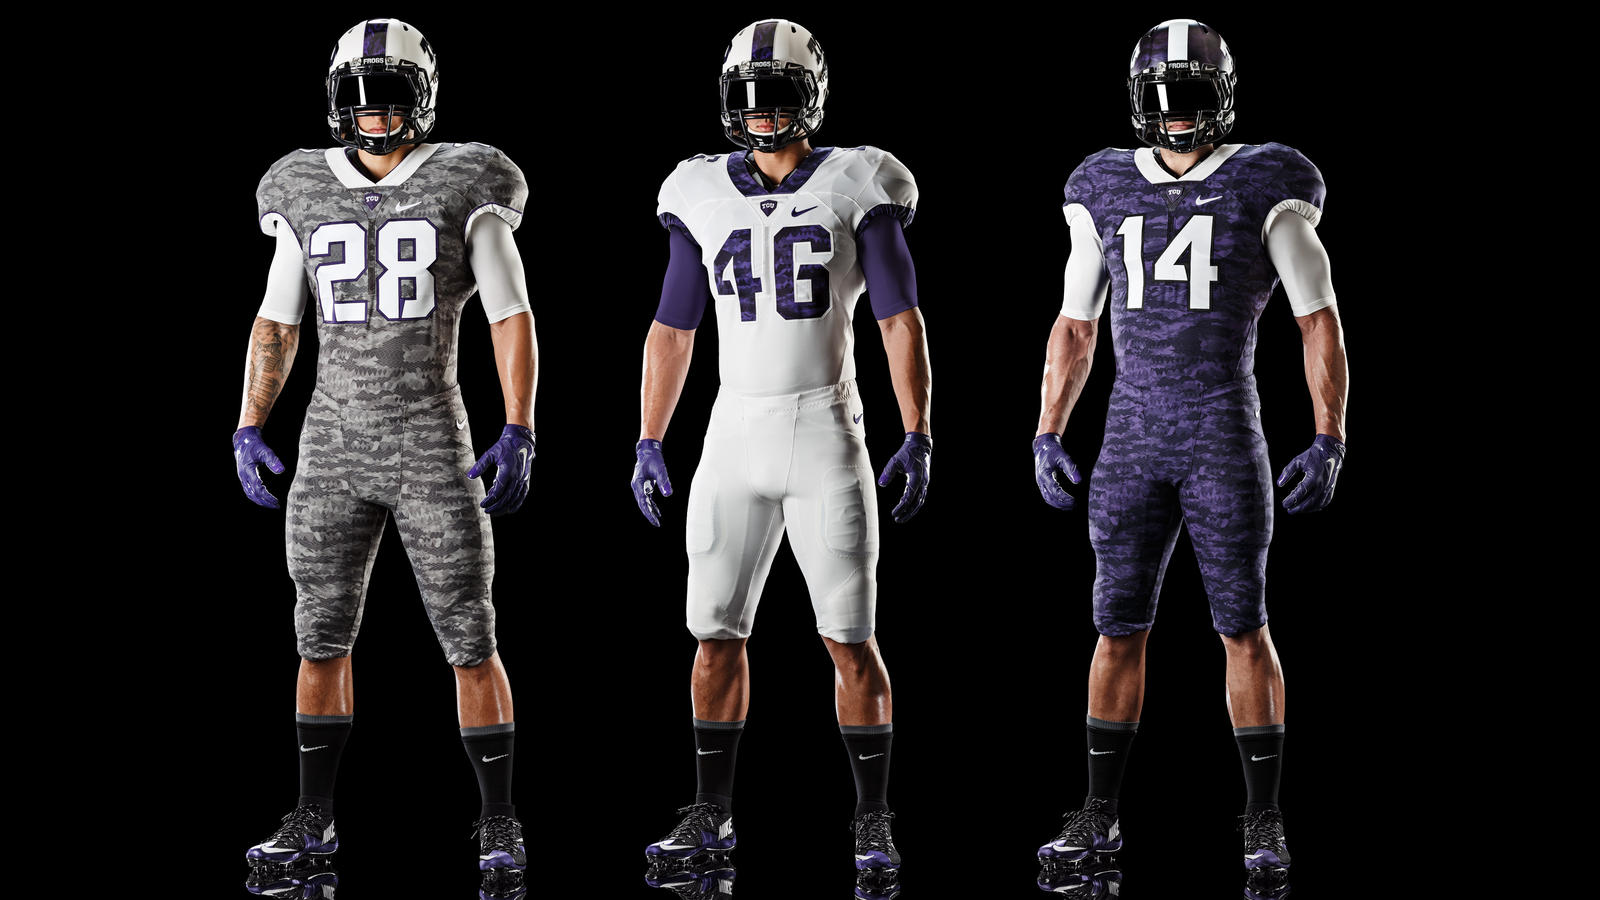 db0a1f6e3 ... Nike Football to advance uniform design and engineering.  150320_Nike_TCU_Front. 150320_Nike_TCU_BACK_16x9. 150320_Nike_TCU_Front